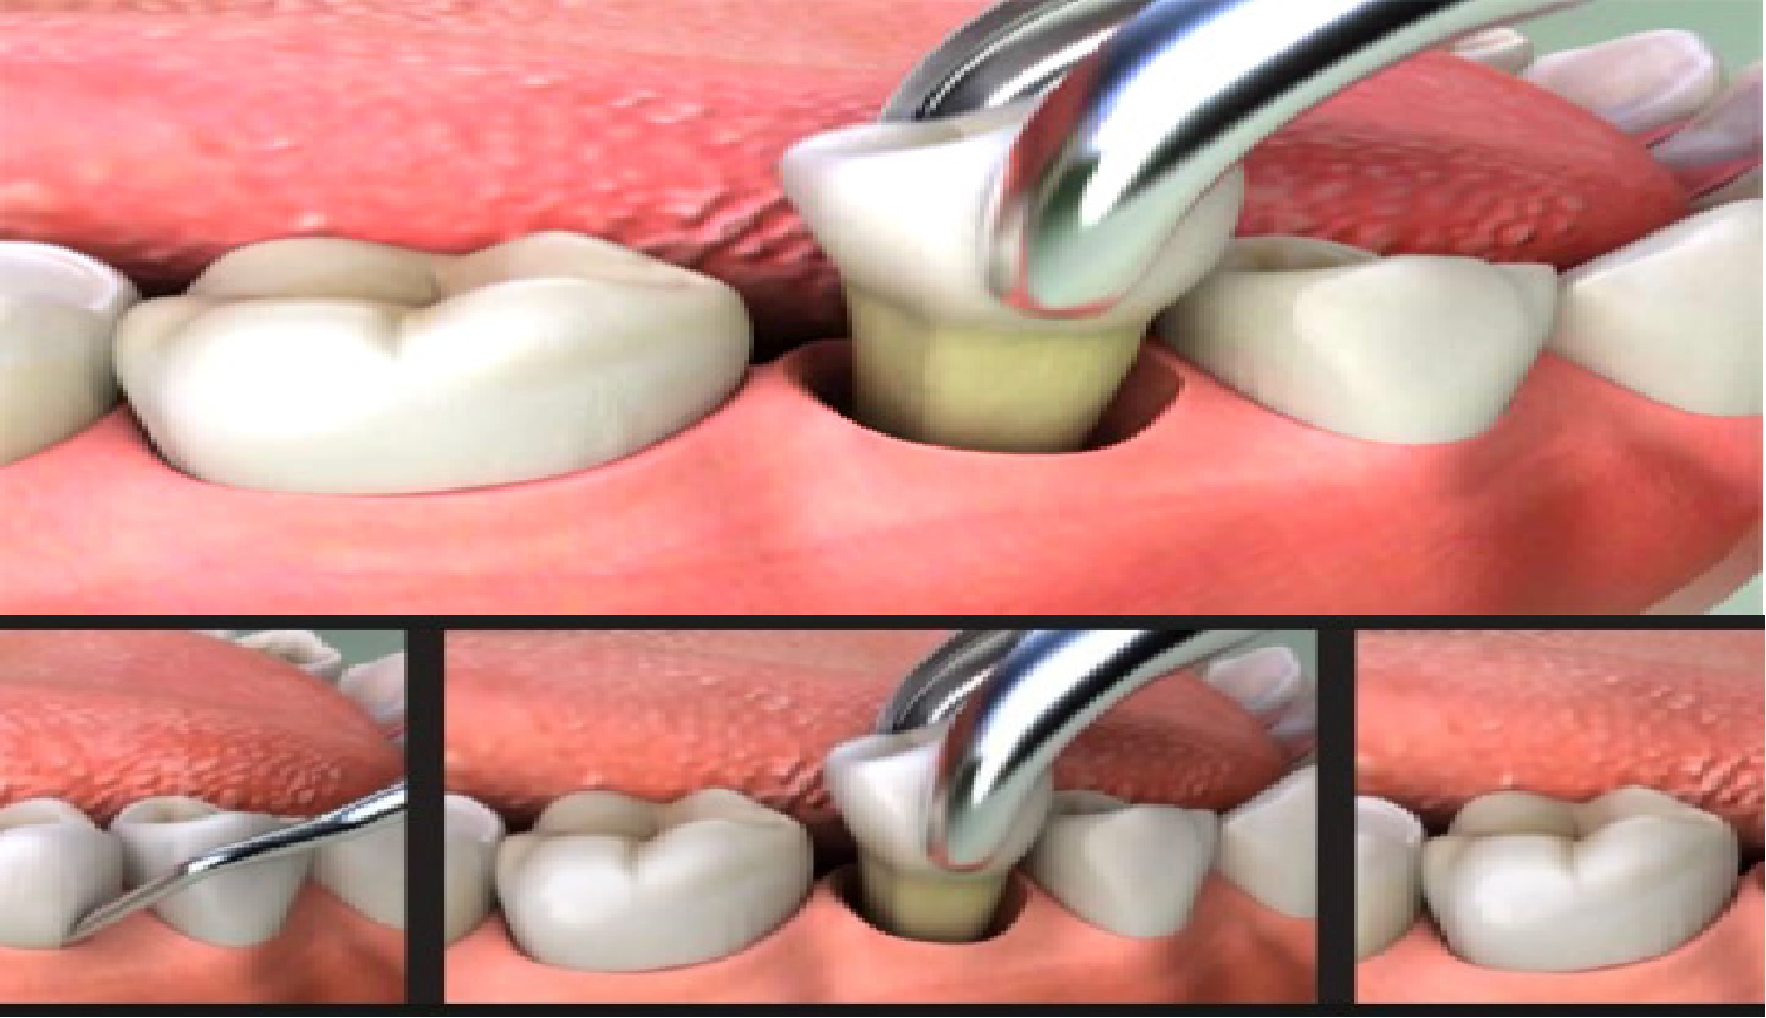 Impacted Wisdom Tooth Surgery Dental Extraction Tooth Extraction Care Dental Hospital